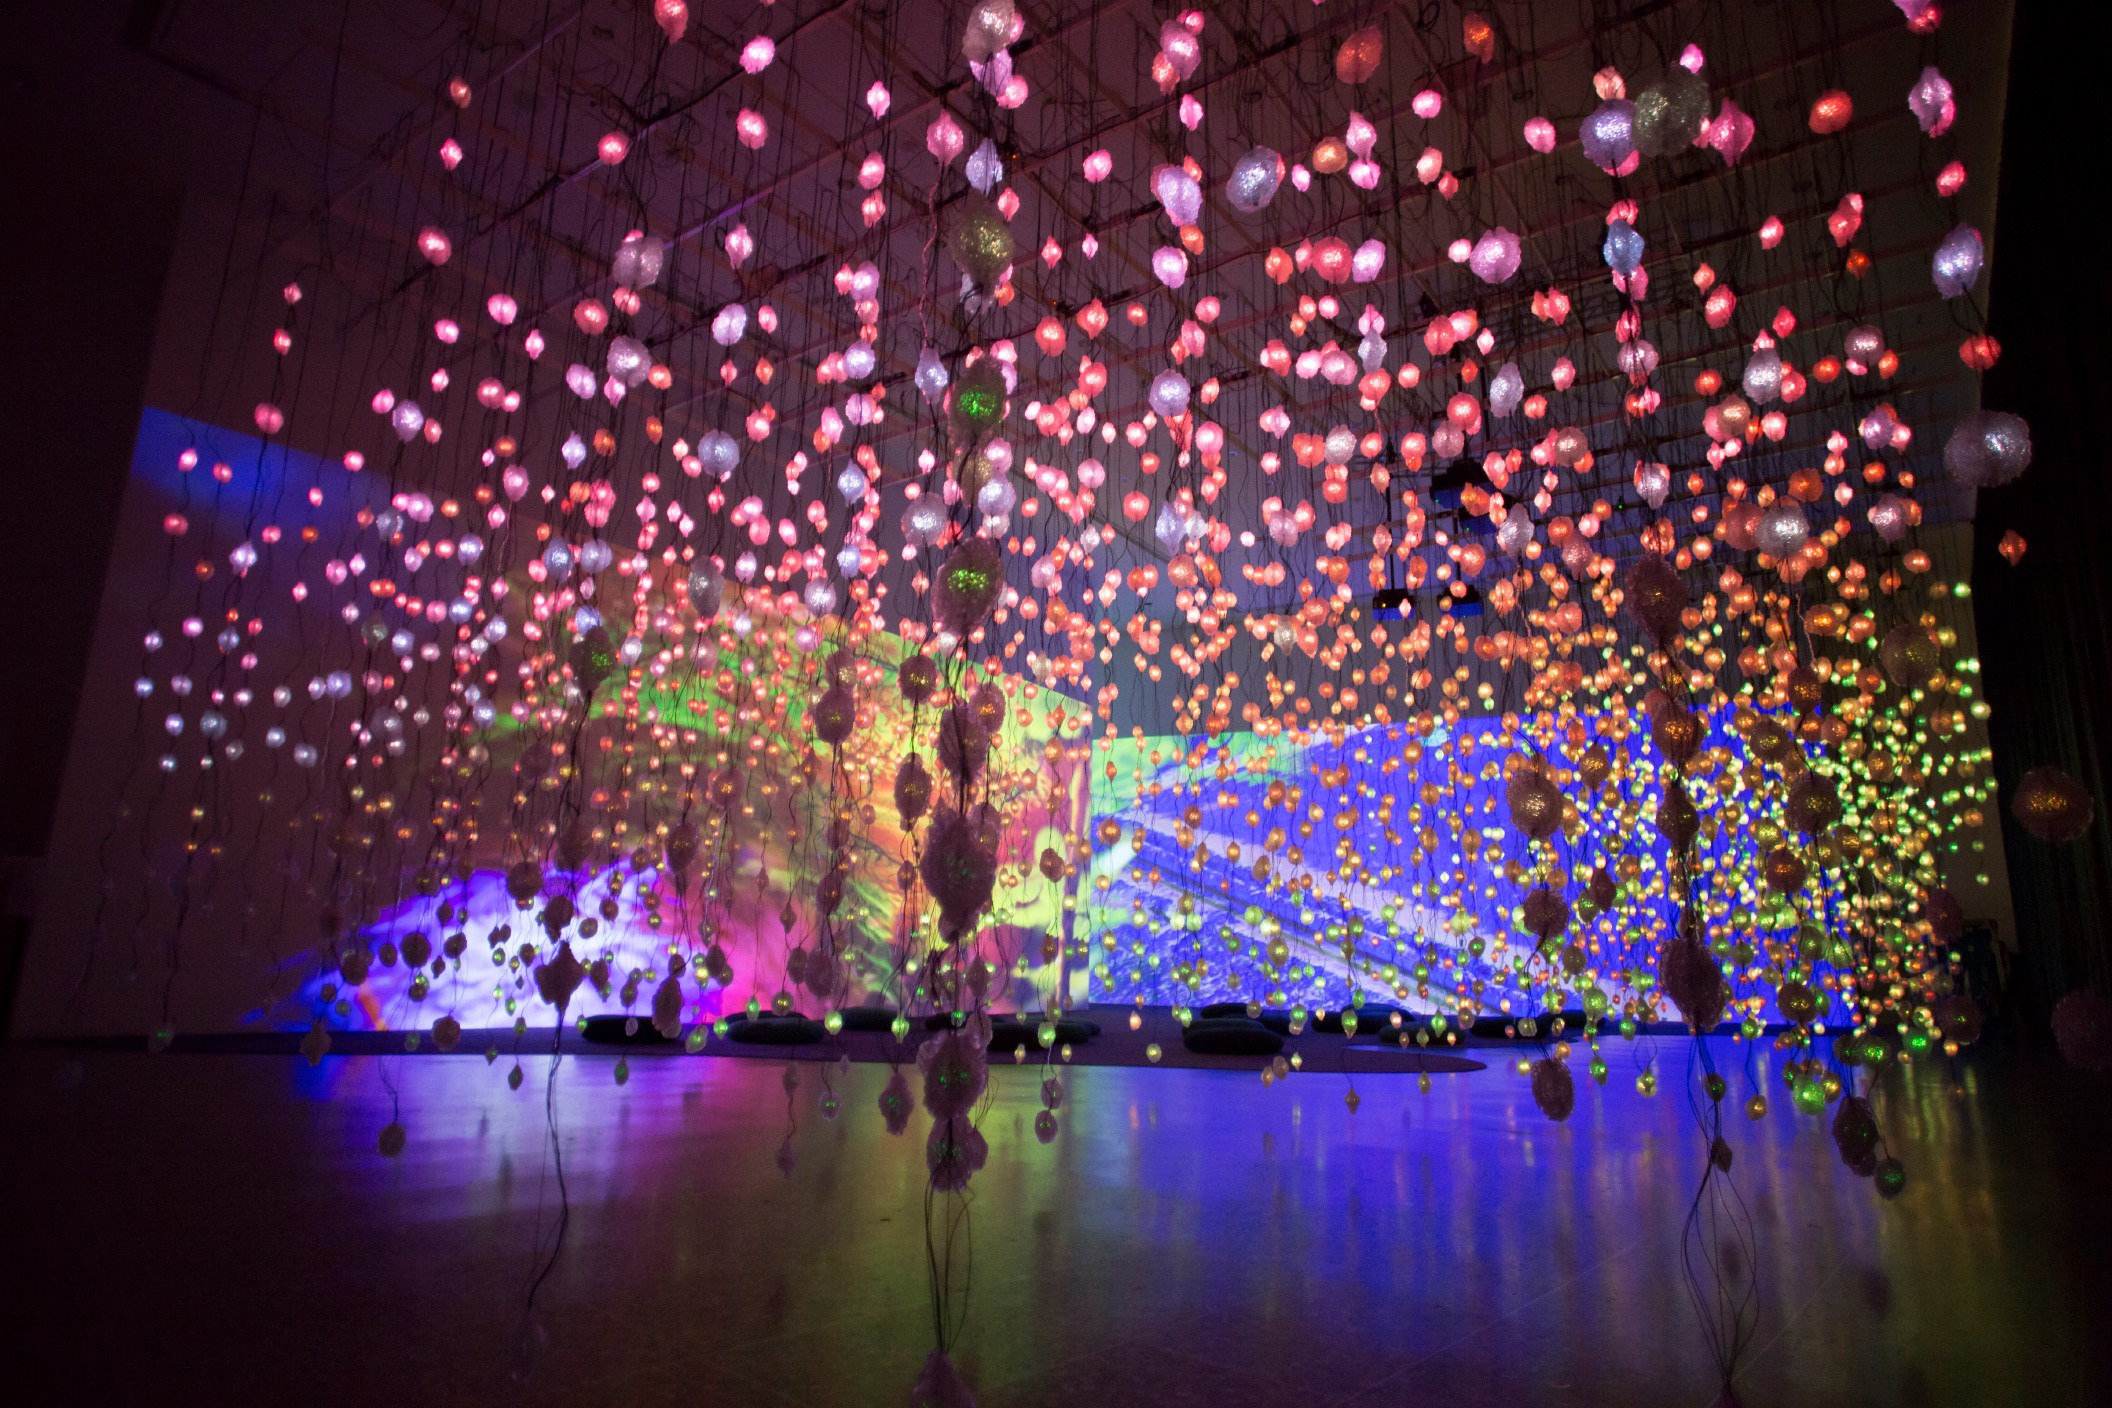 Pipilotti Rist, Storyhive Photo / Pixel Forest, Empty, Pink, Tighter Crop To